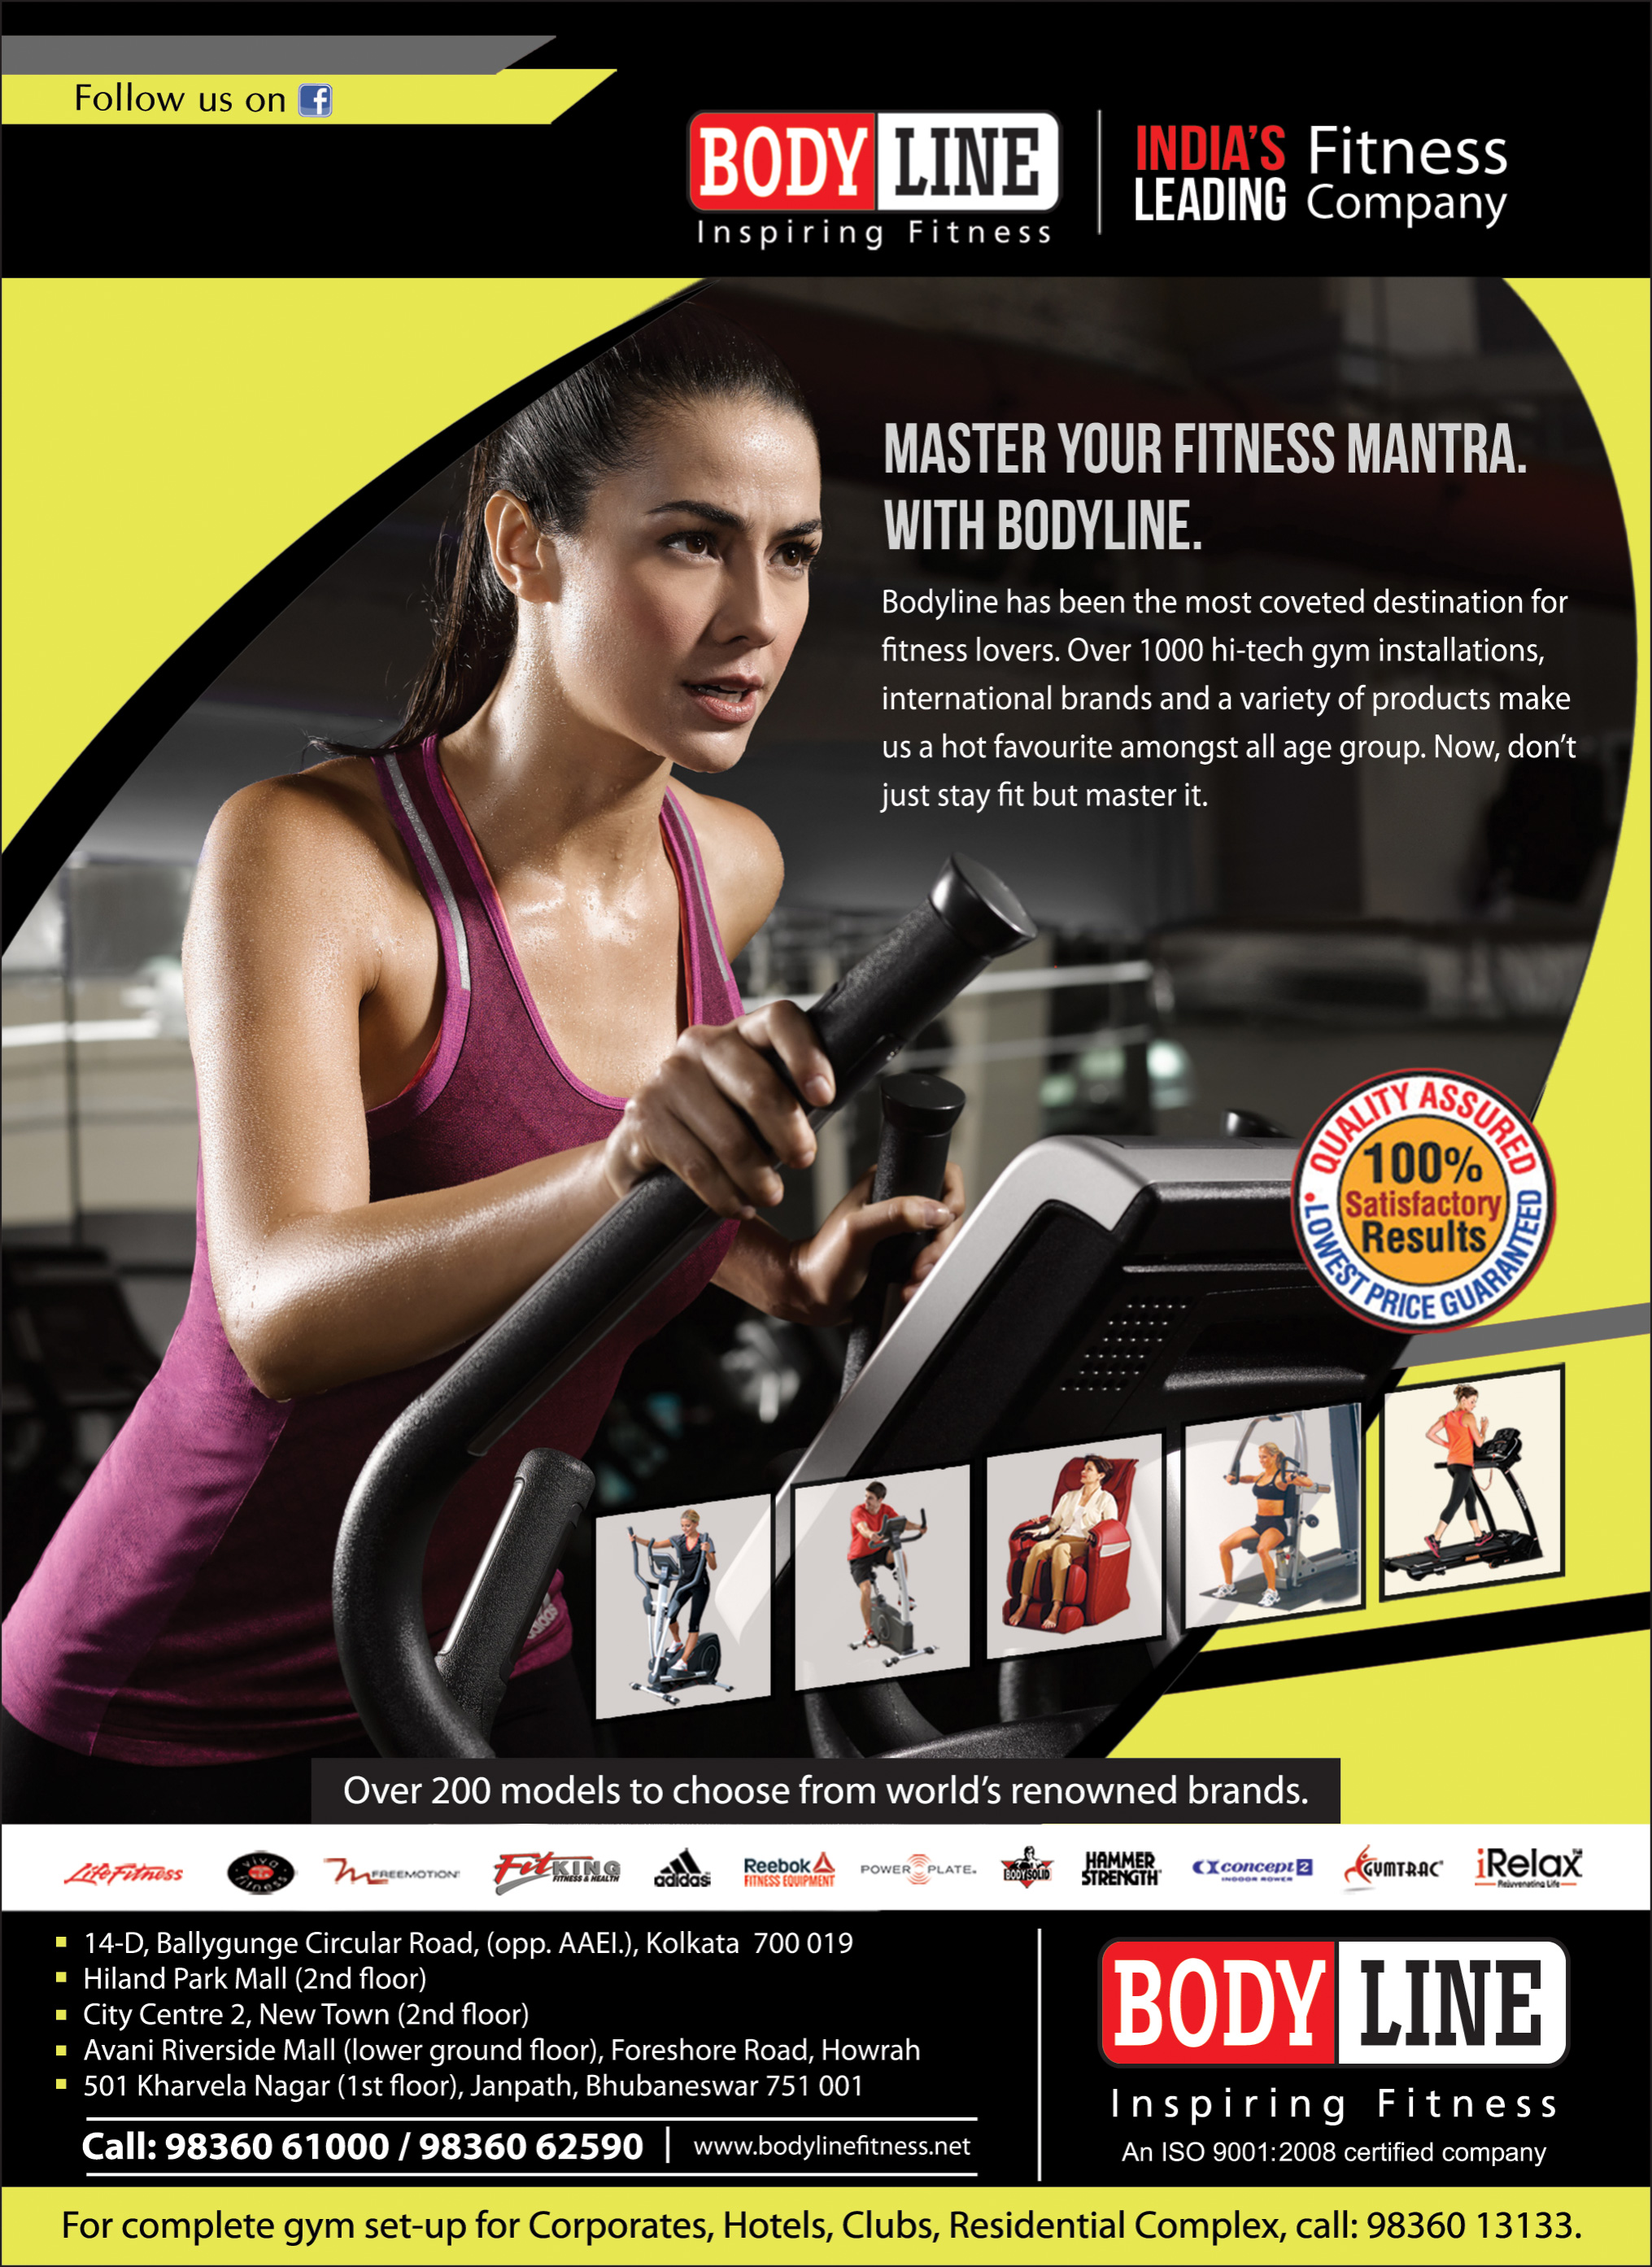 Health Club Equipment and Supplies, BODYLINE SPORTS, Kolkata,  Yellow Pages, Kolkata, West Bengal